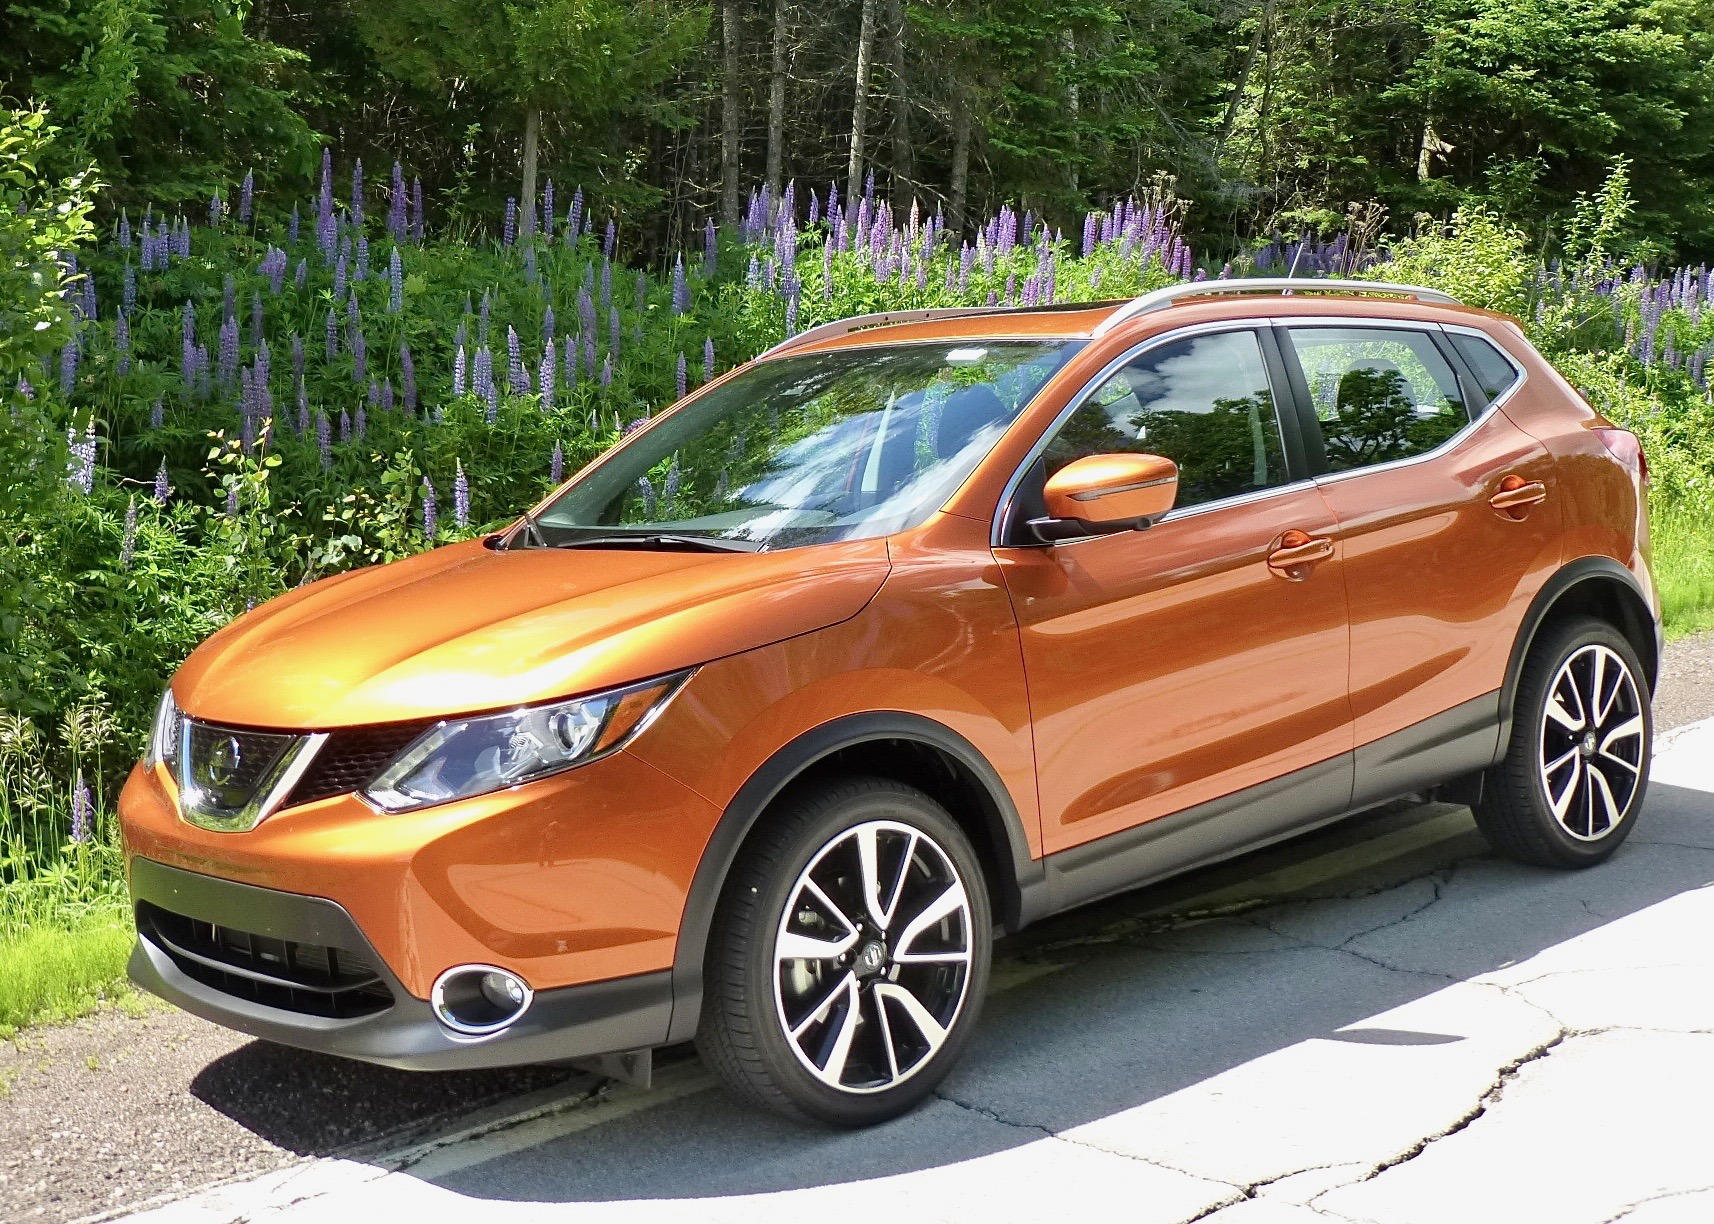 The Nissan Rogue is such a popular SUV it has expanded into a new and more compact vehicle, the Rogue Sport.